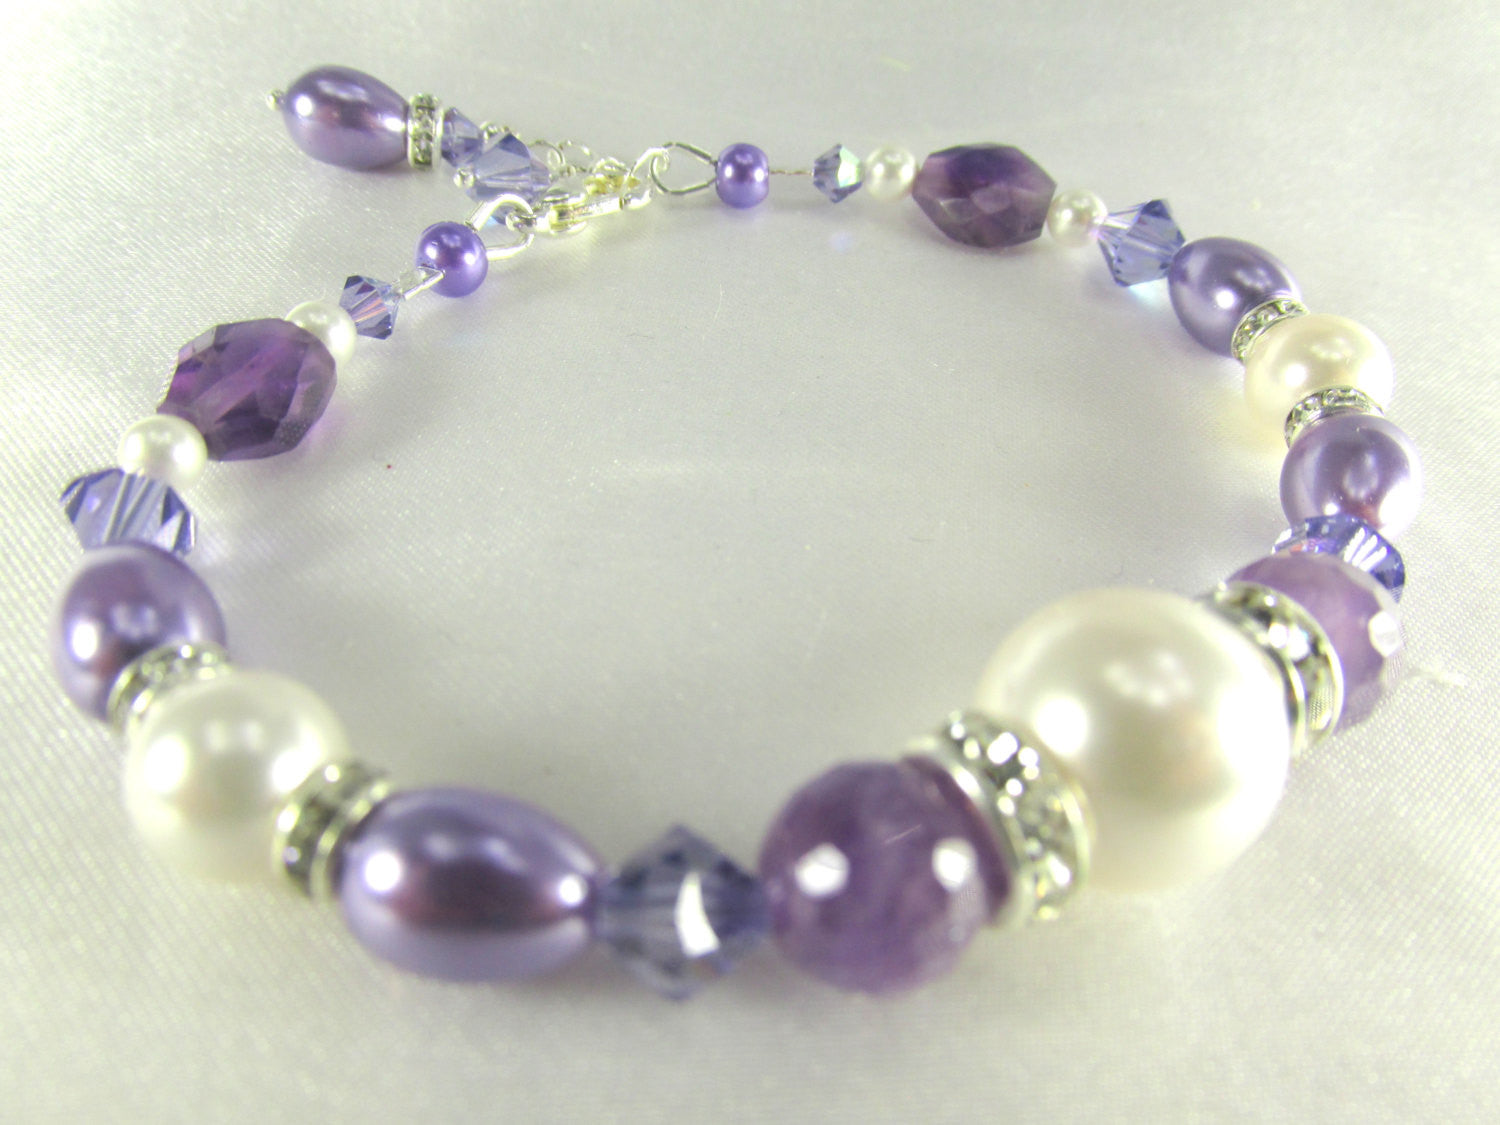 Bridesmaid or Everyday Bracelet in Amethyst Stones, Purple Tanzanite Swarovski, Pearl Teardrops and Rounds on Silver - Odyssey Creations